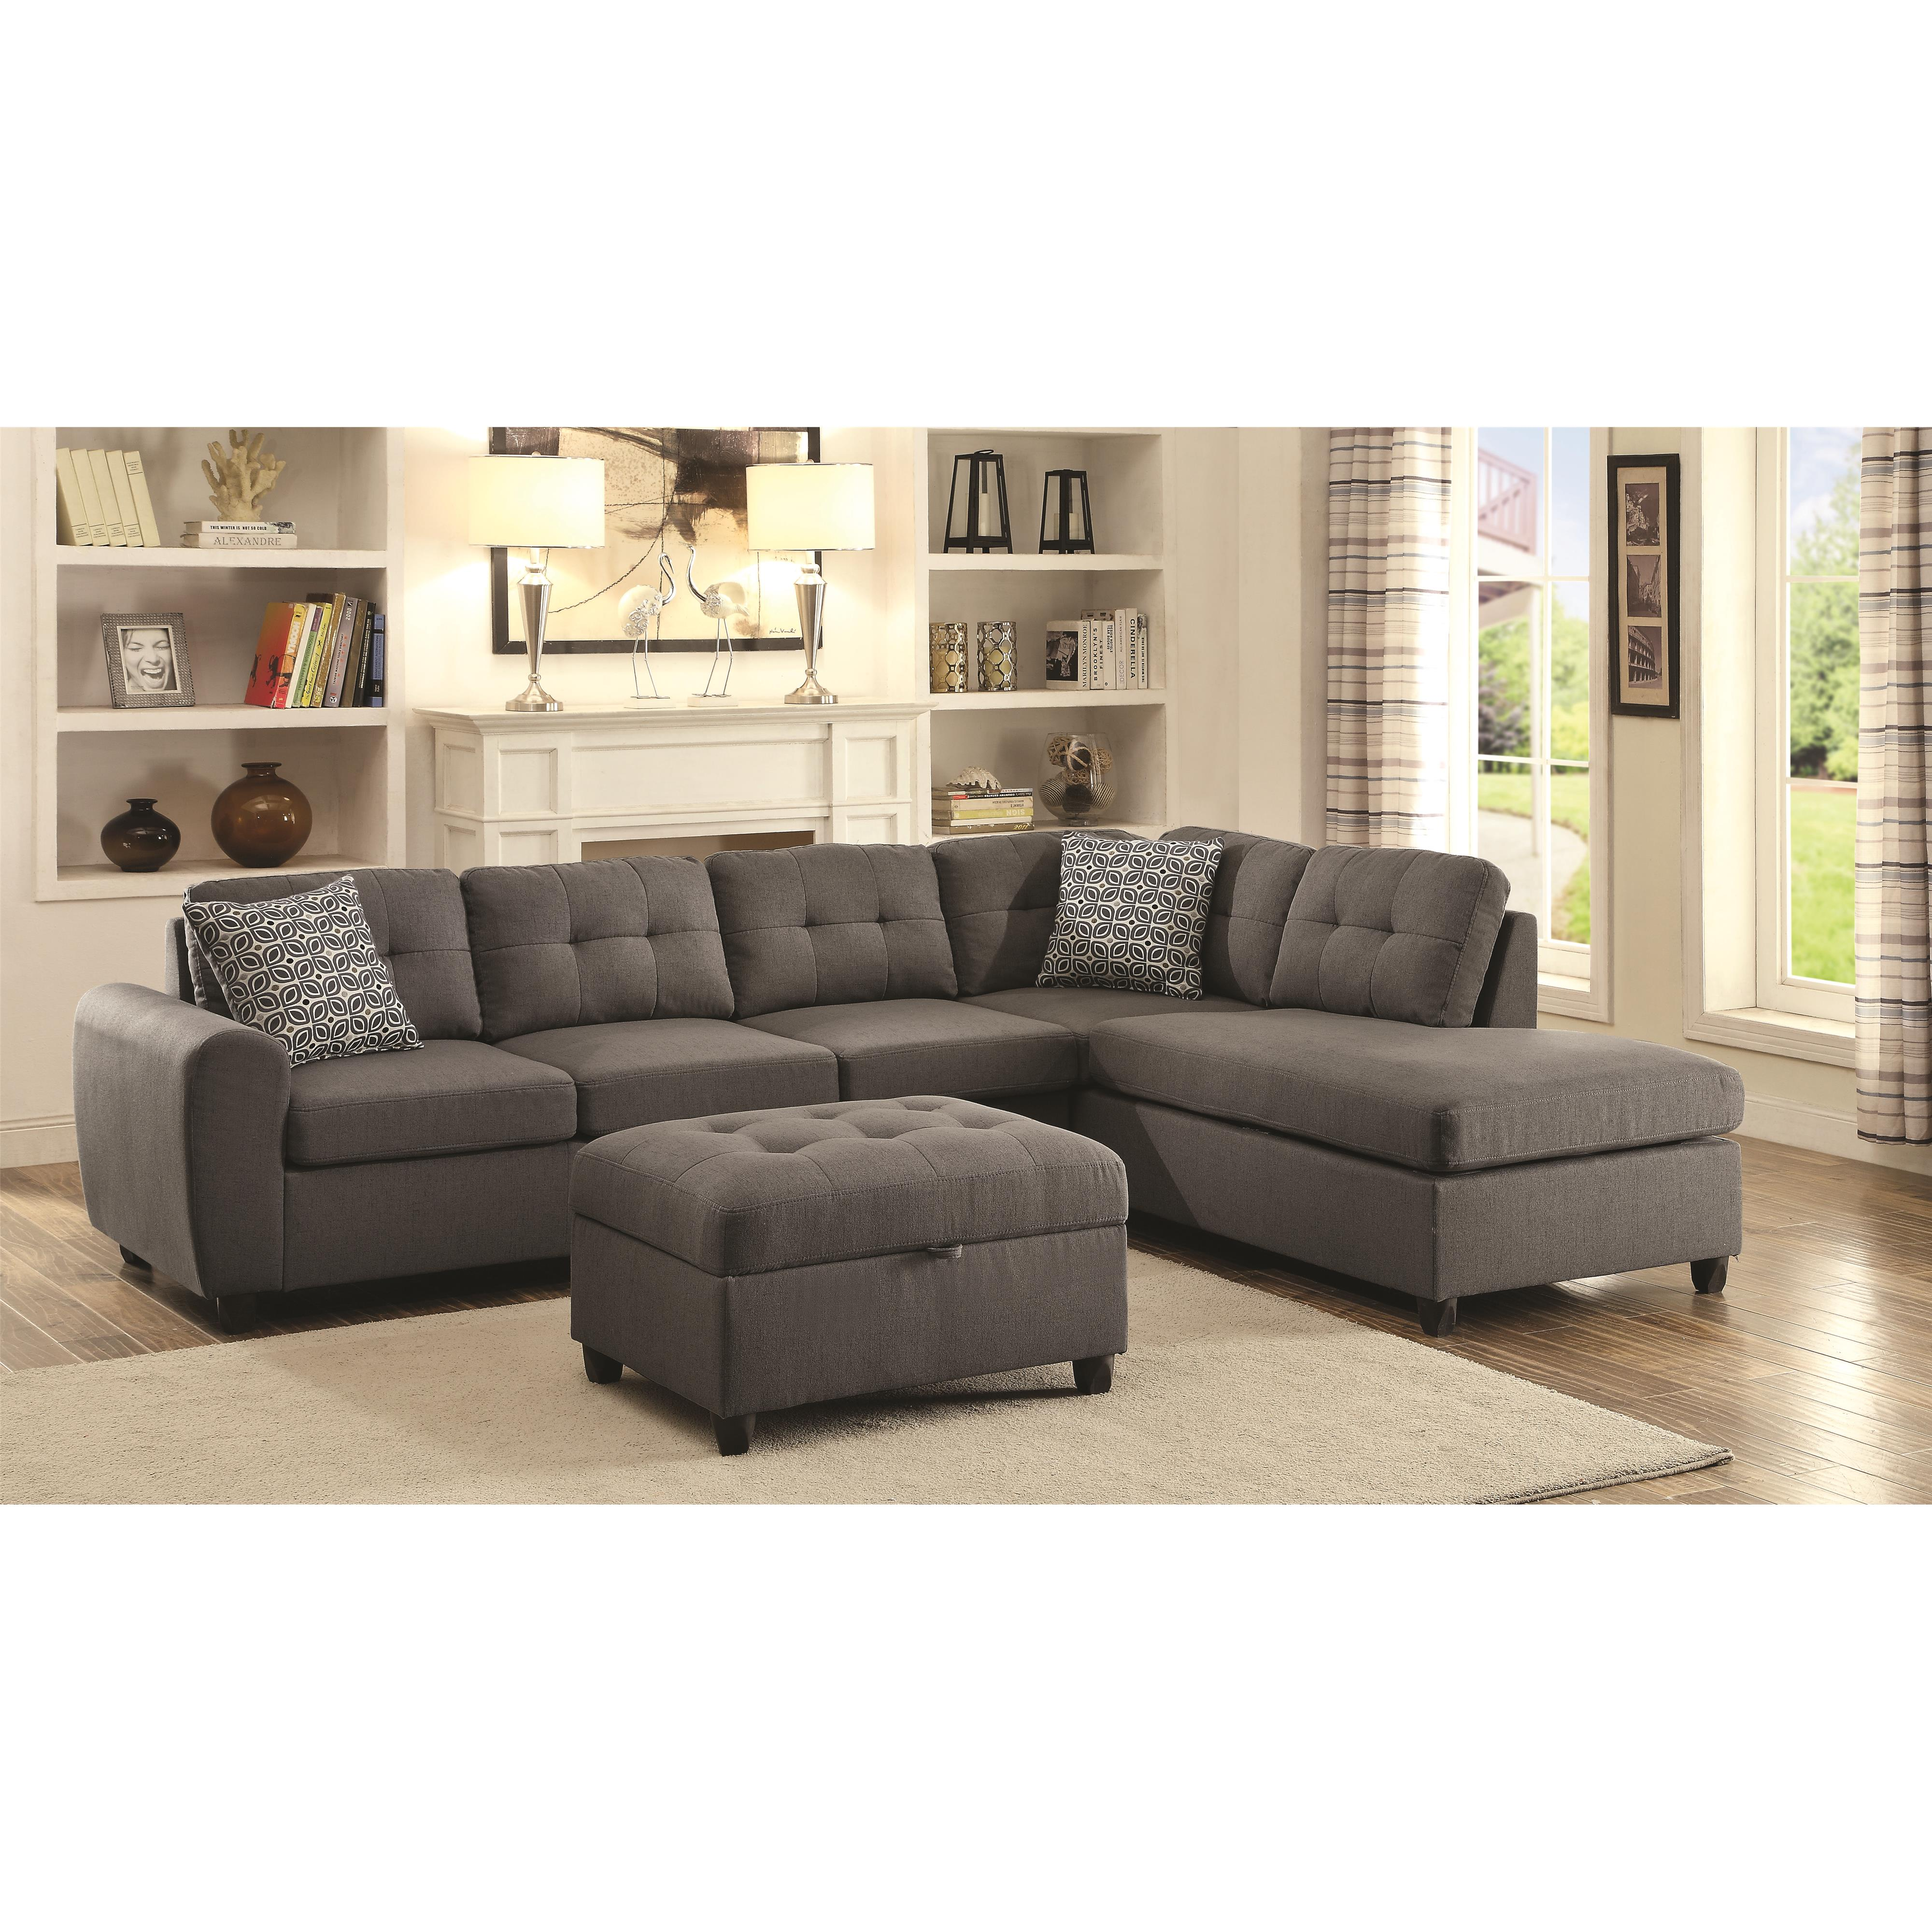 Stonenesse Sectional by Coaster at Northeast Factory Direct